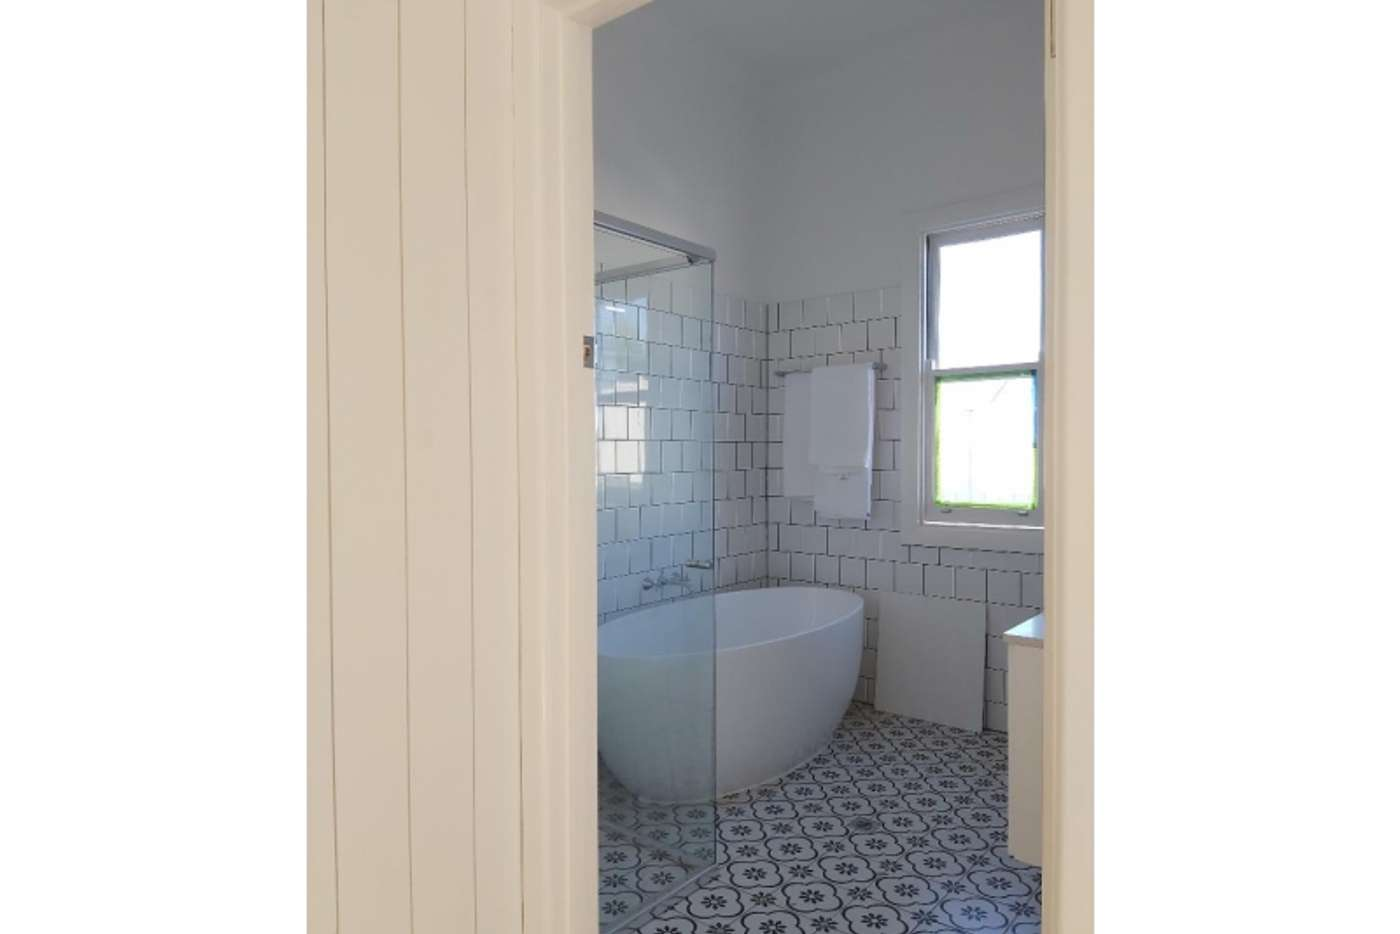 Seventh view of Homely house listing, 41 Jarvis Street, Berri SA 5343